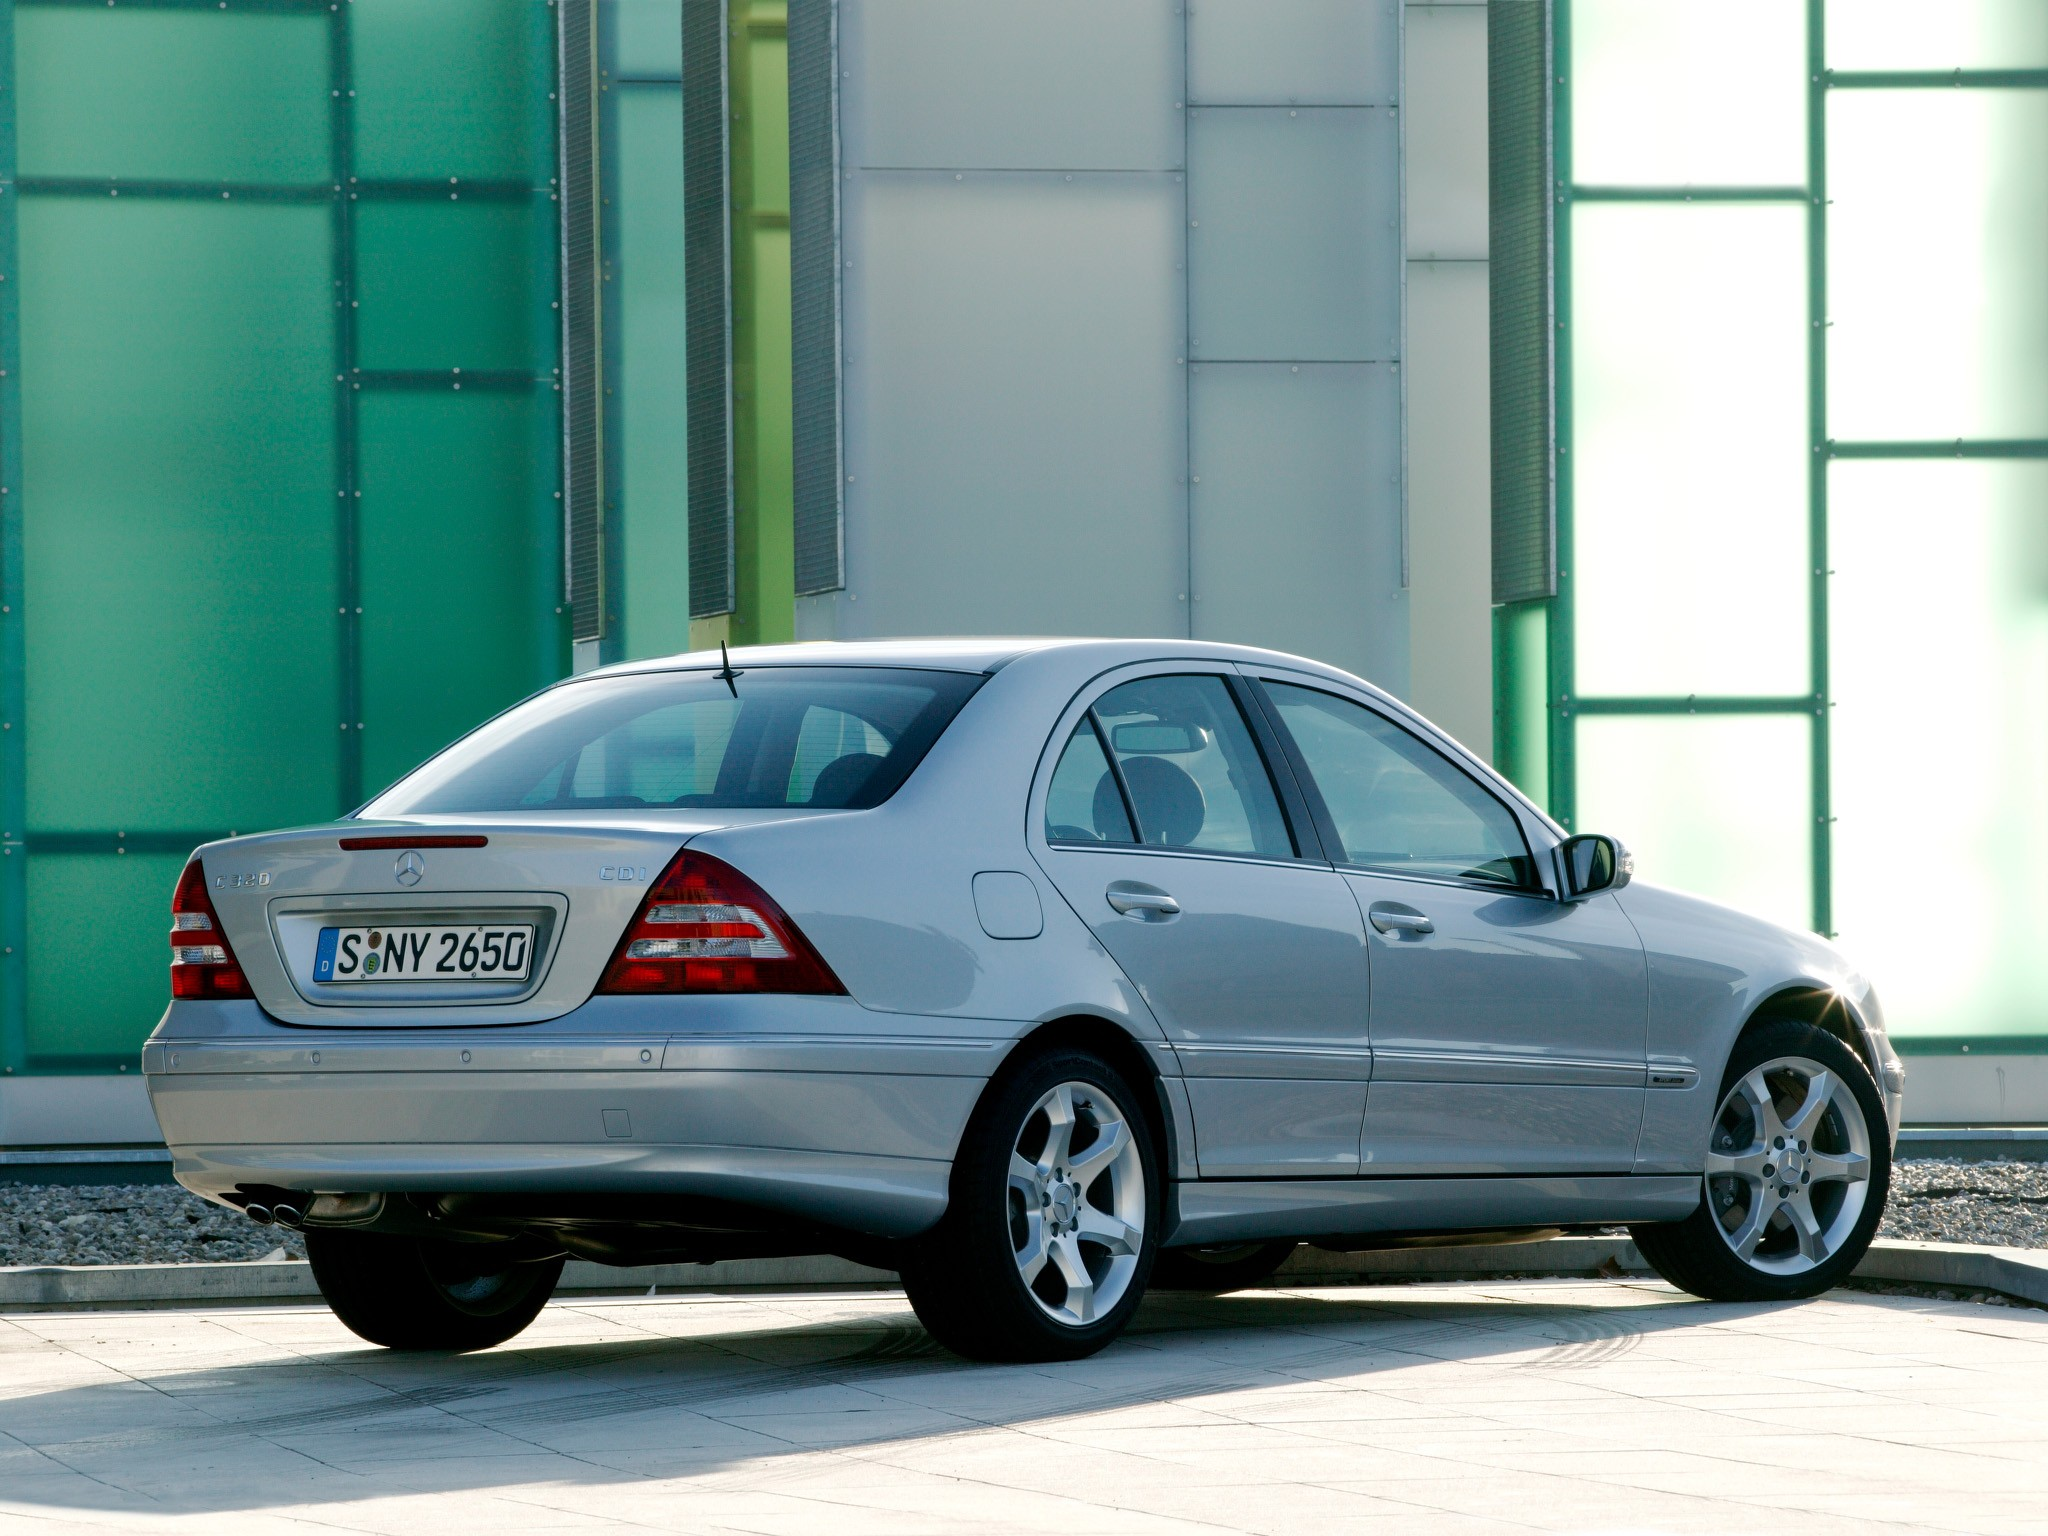 It also helps the engine send power to your transmission. MERCEDES BENZ C-Klasse (W203) specs & photos - 2004, 2005